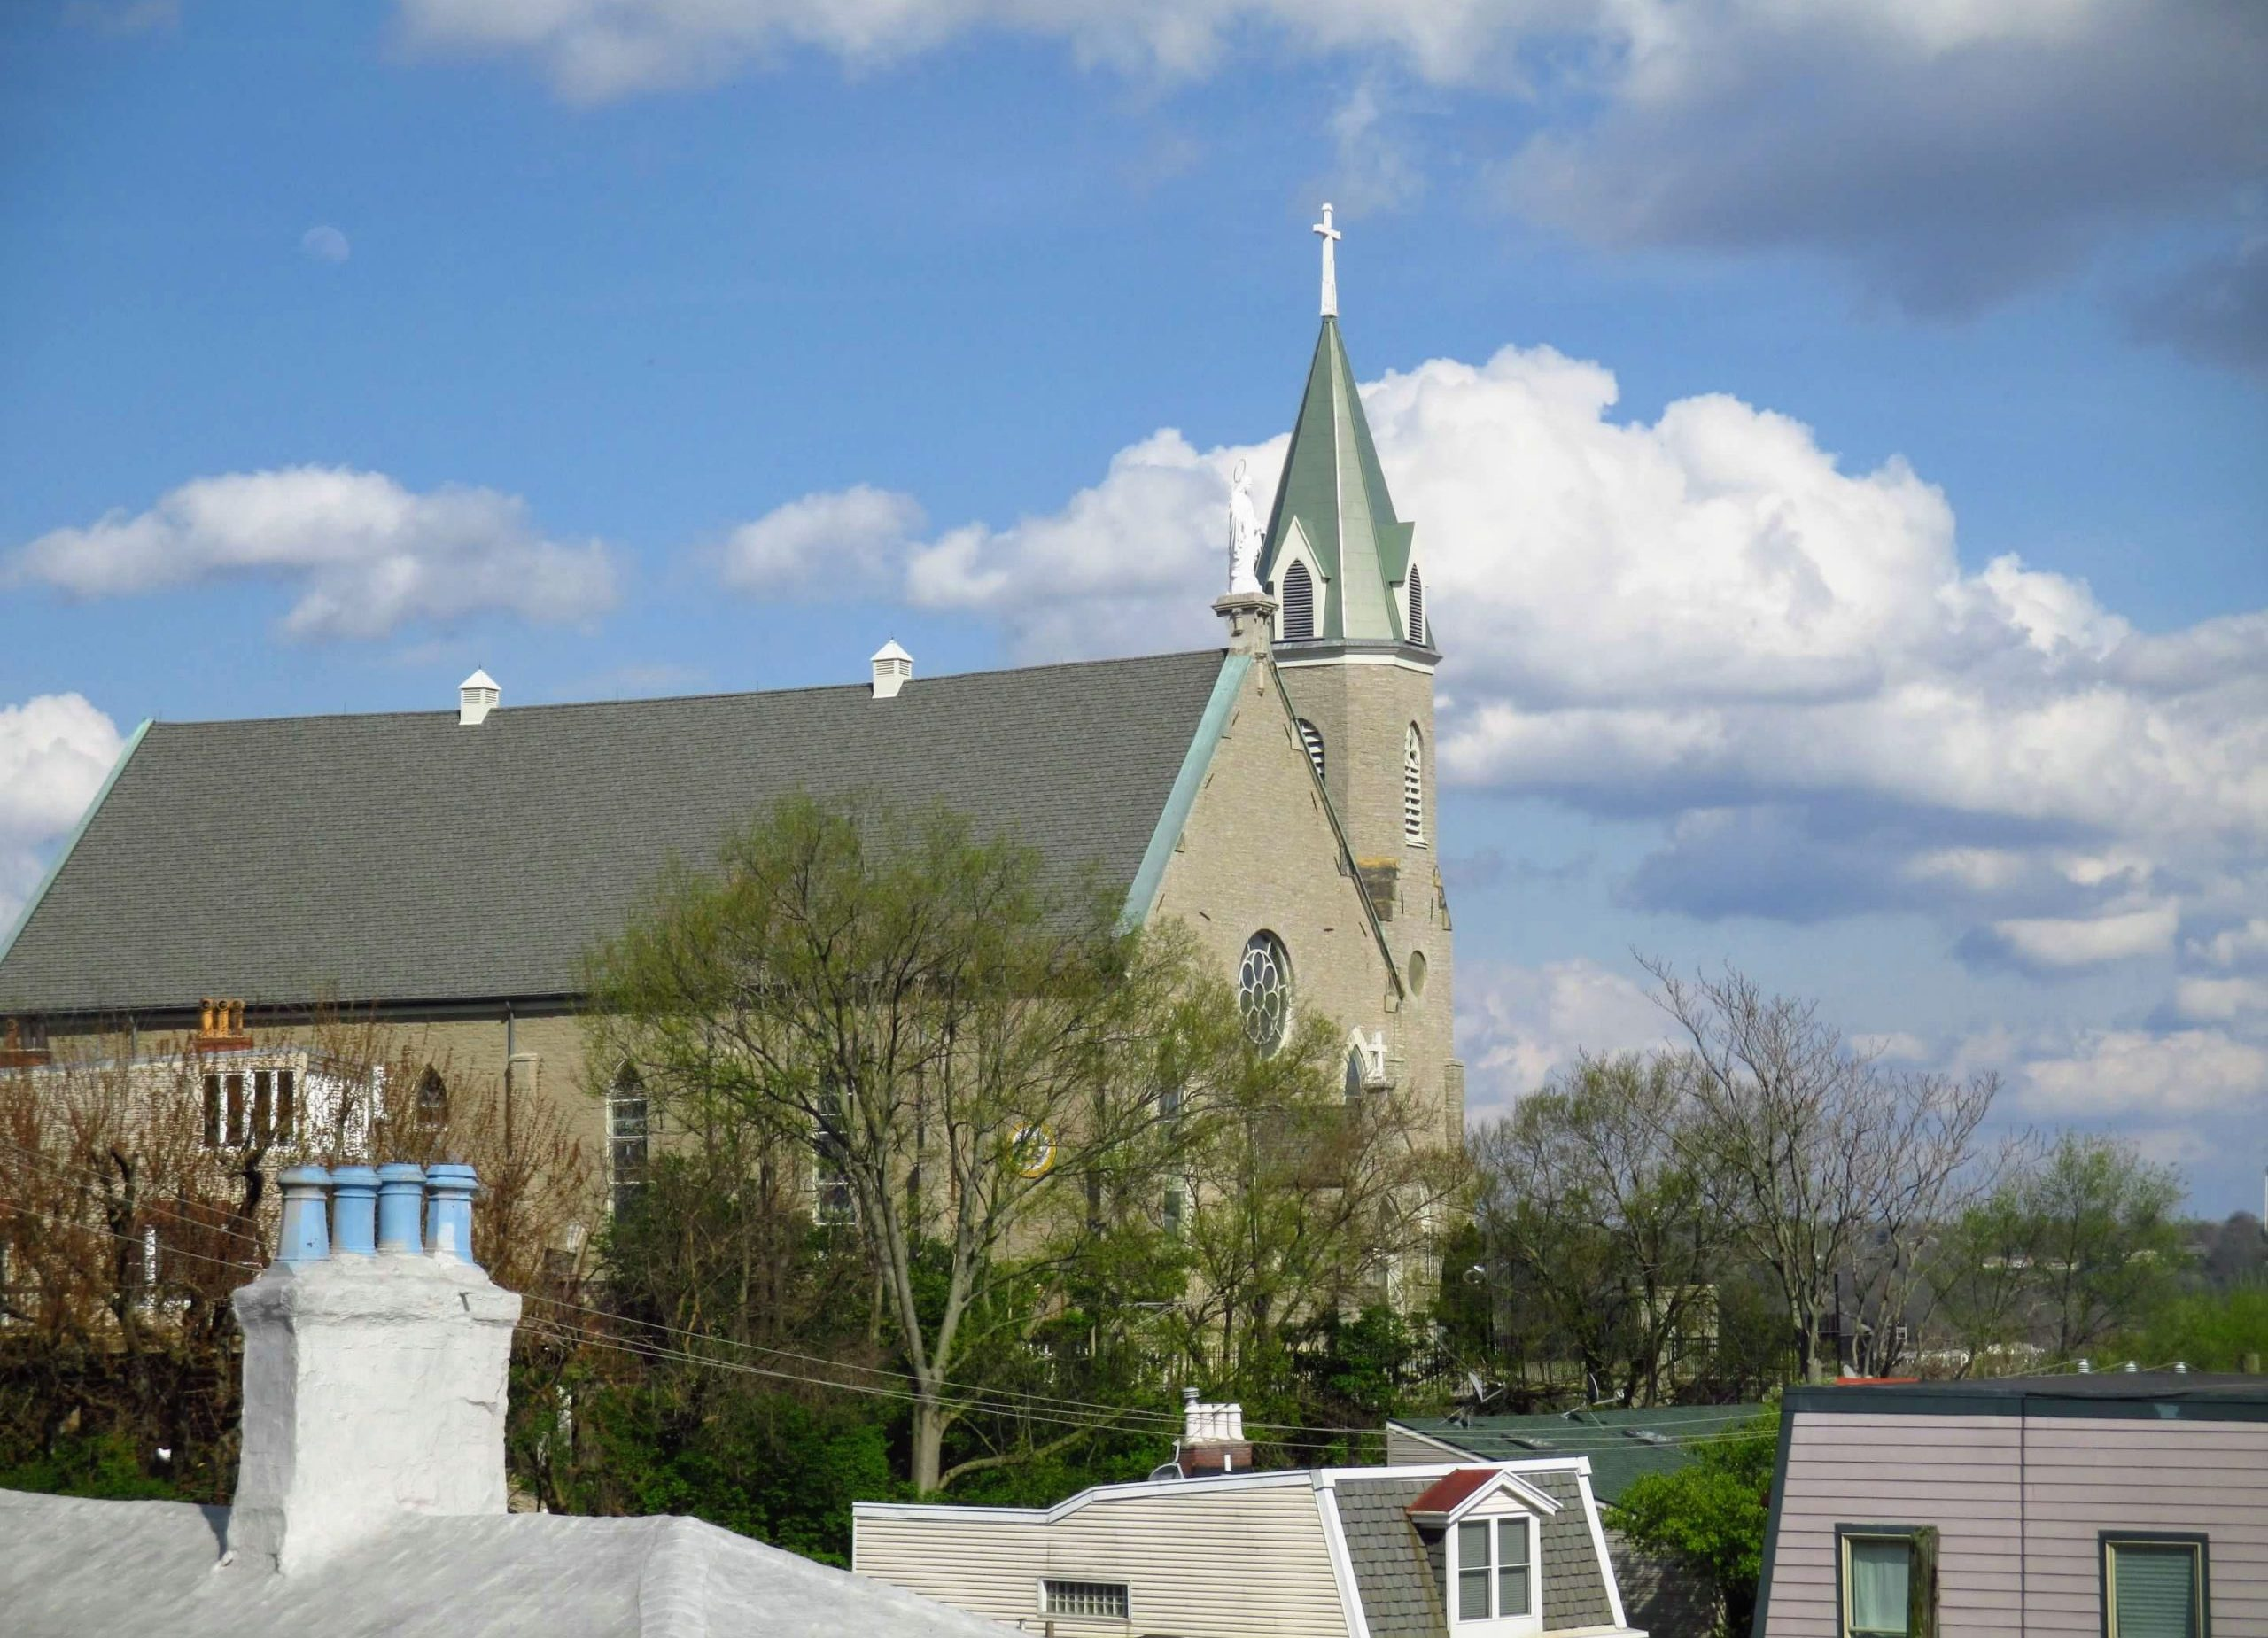 holy cross immaculata church on the hill